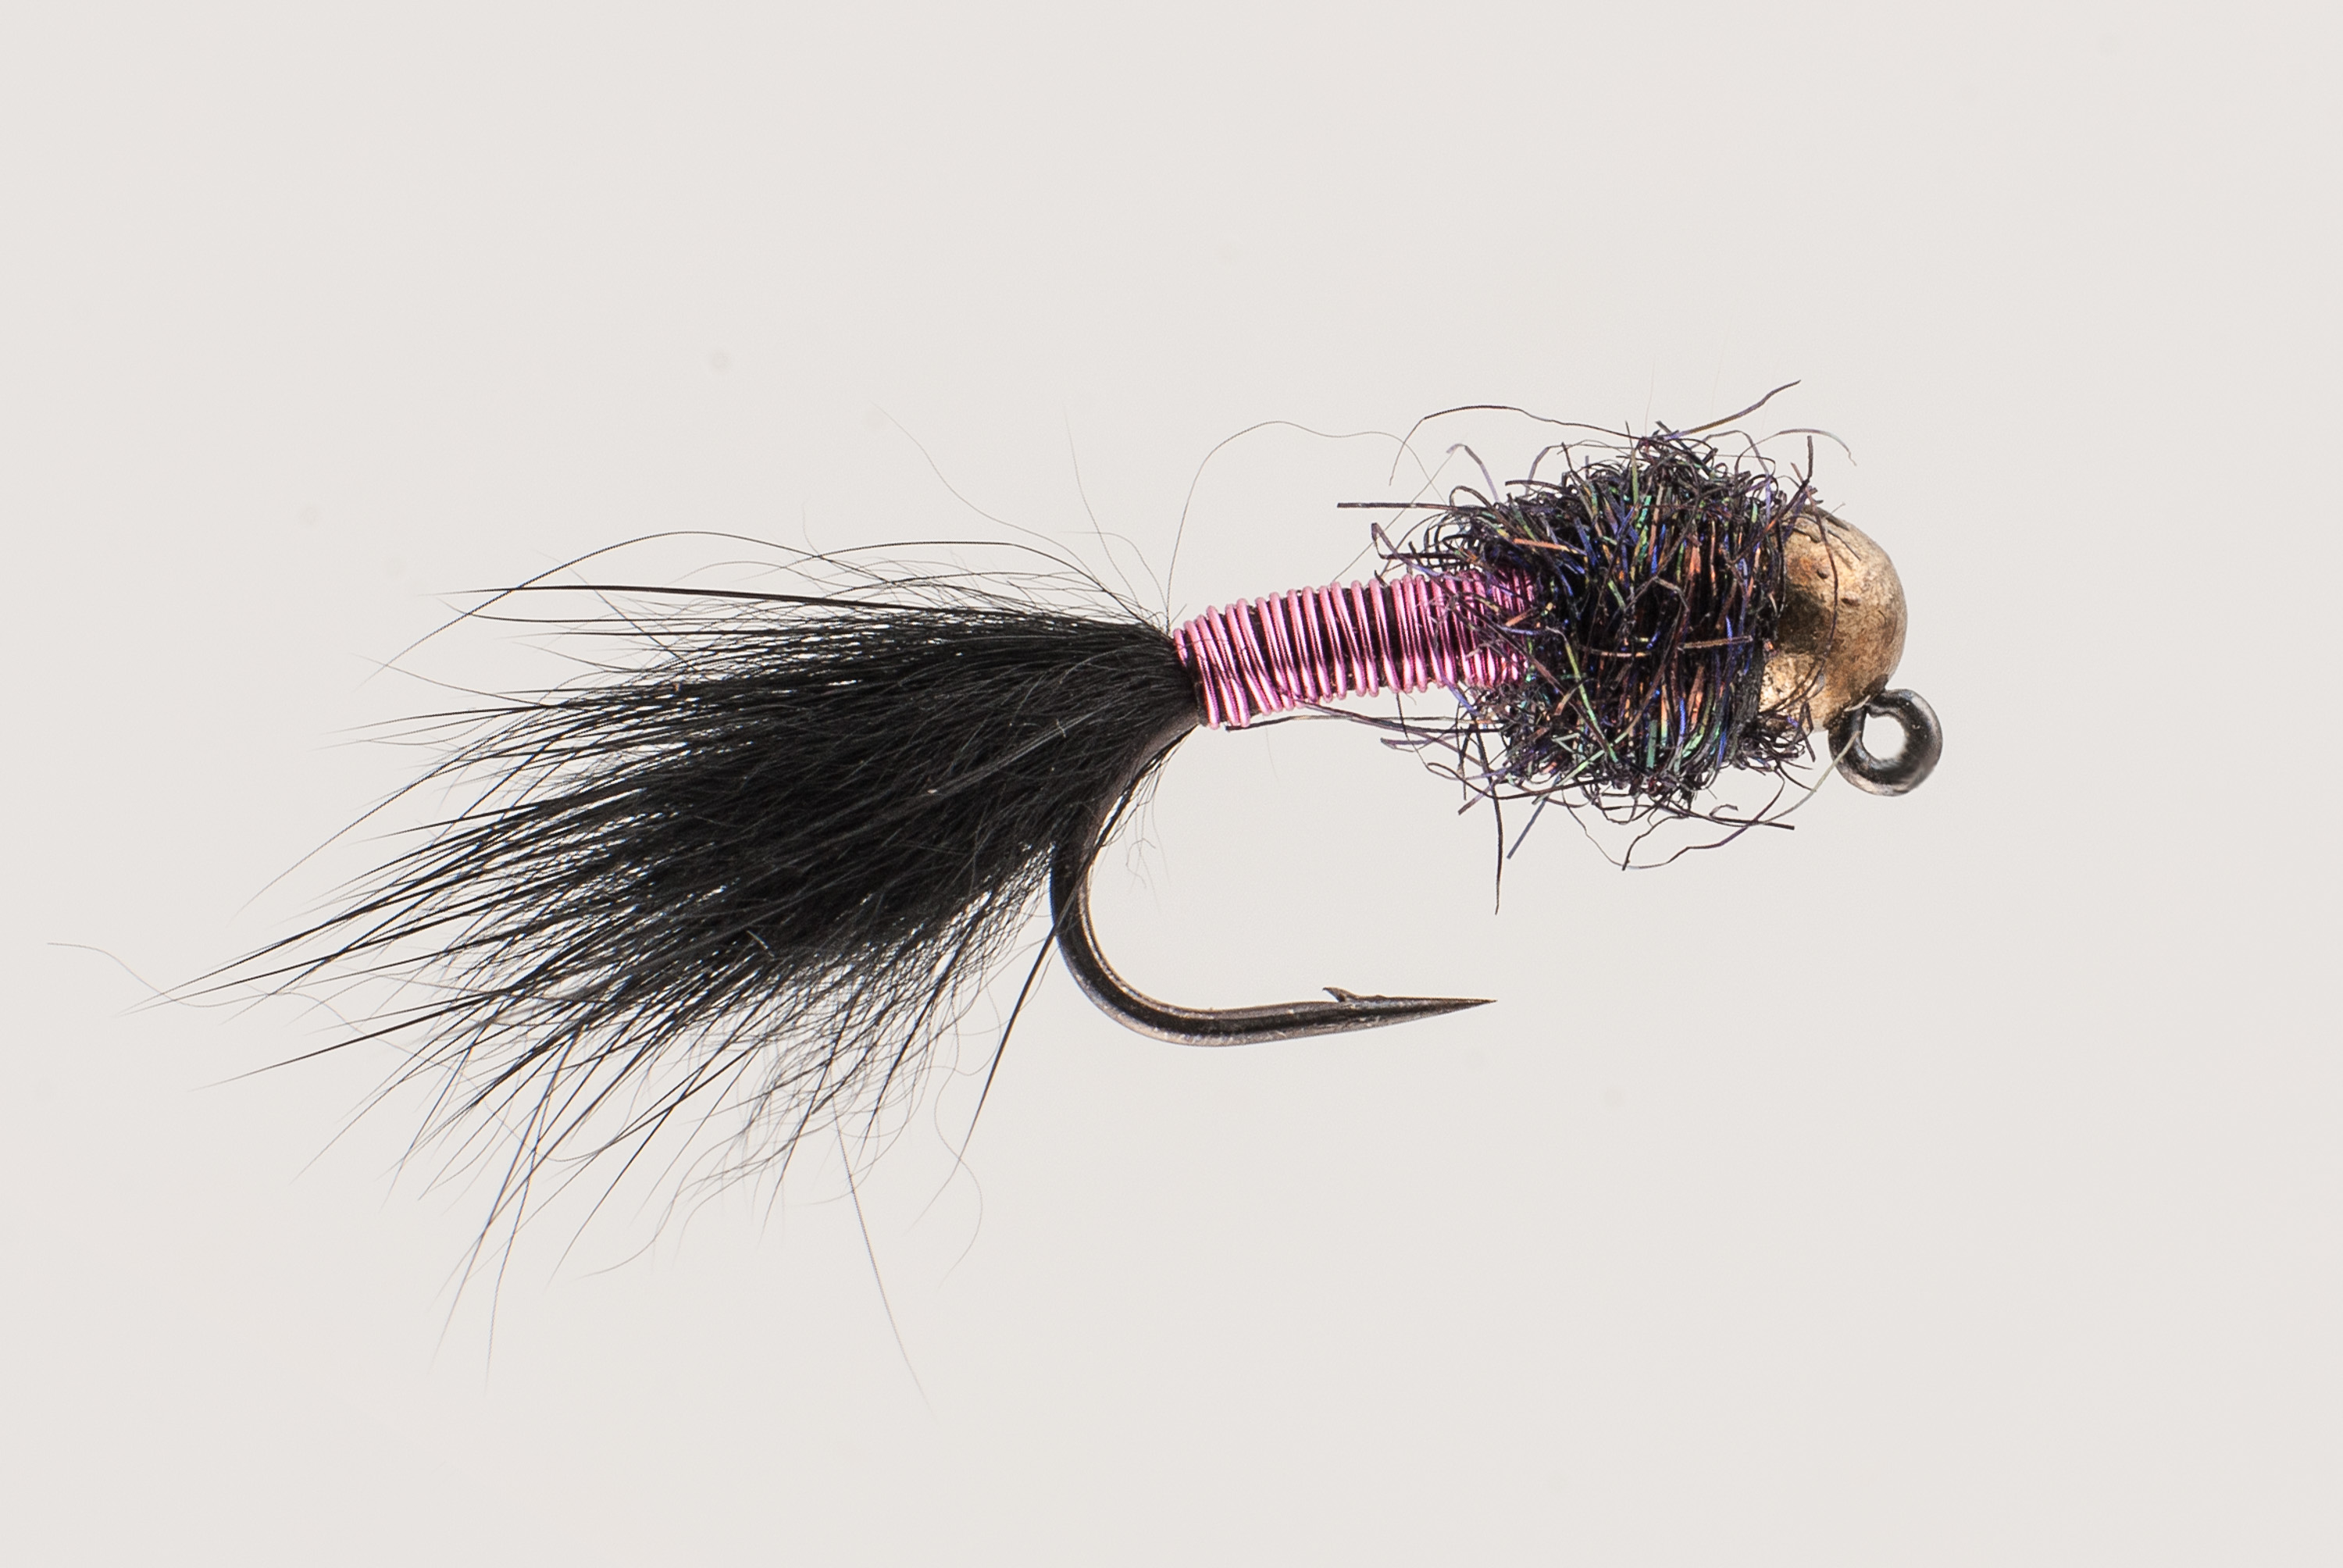 Ice Fishing Flies